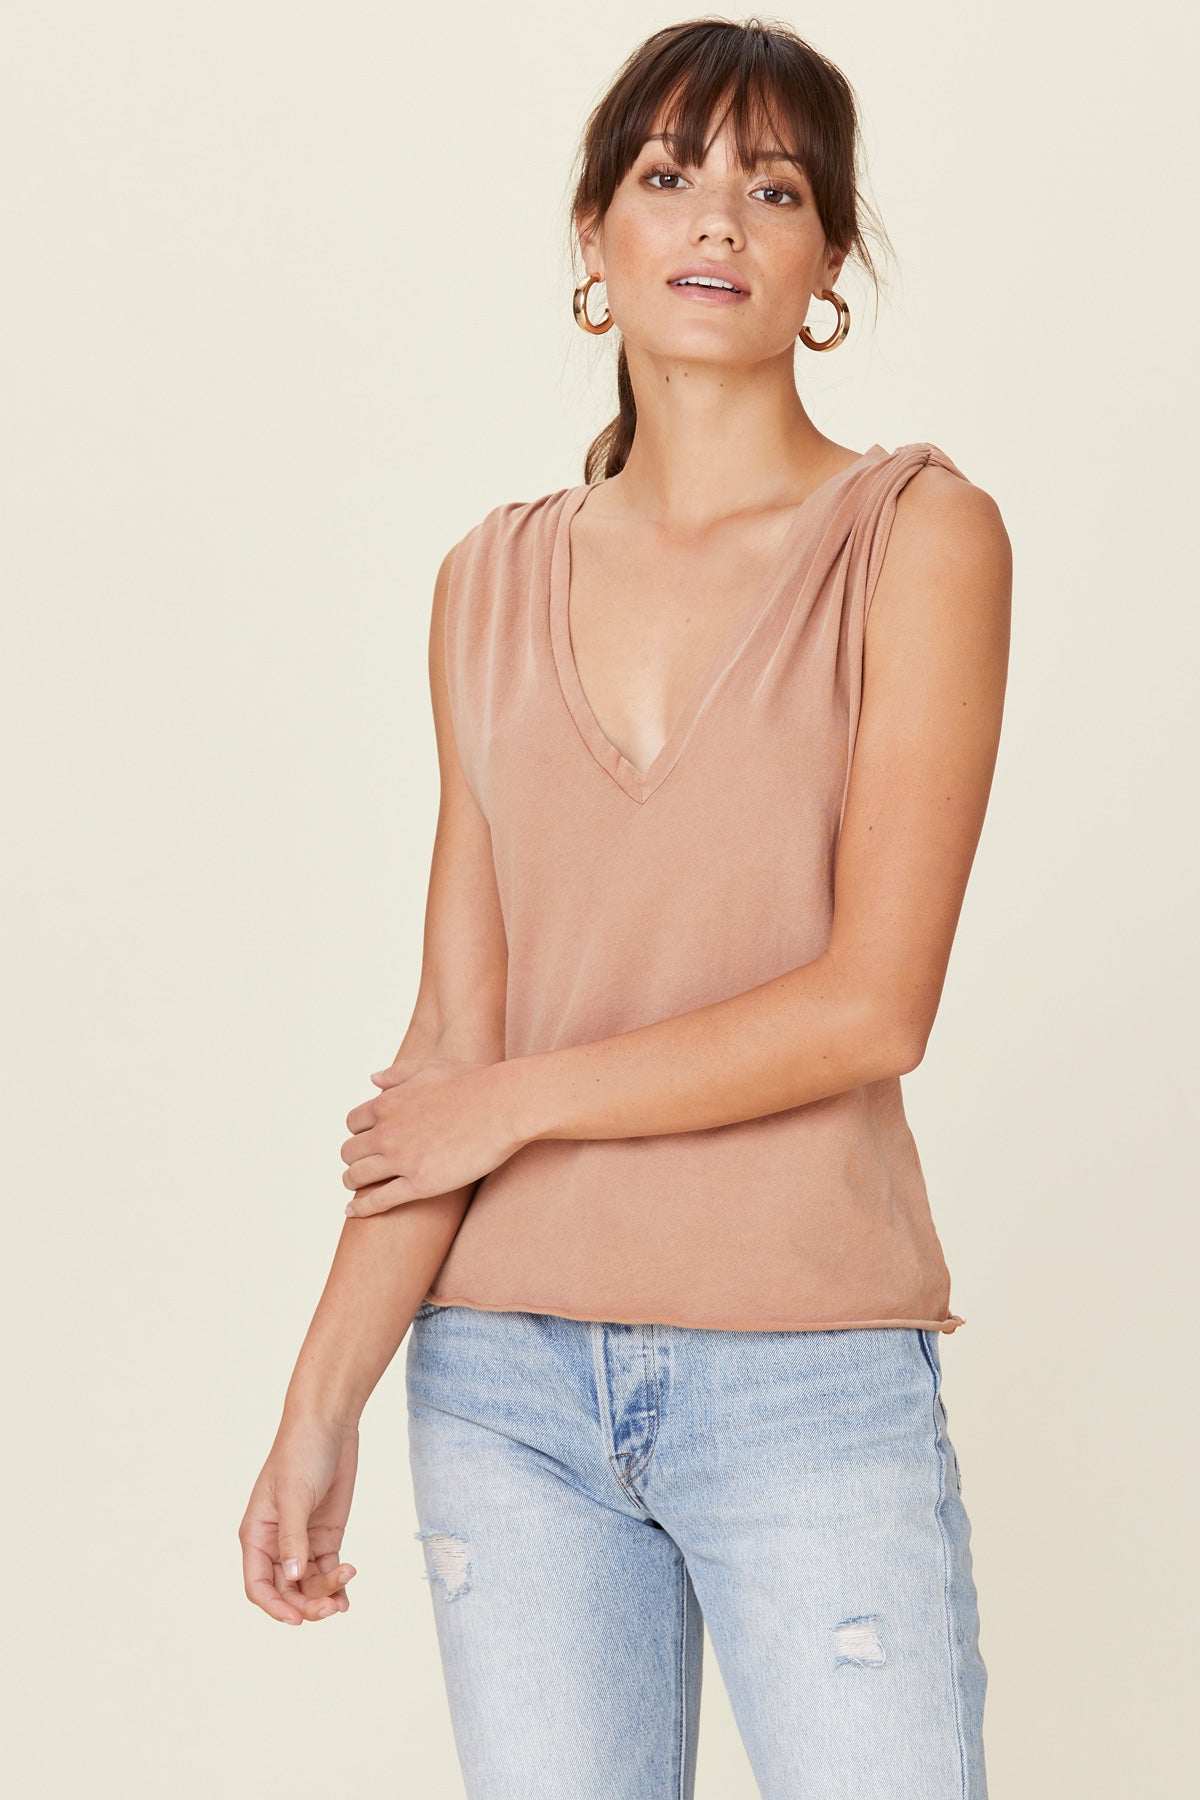 Essential Cotton Lyle Sleeveless by Lna Clothing